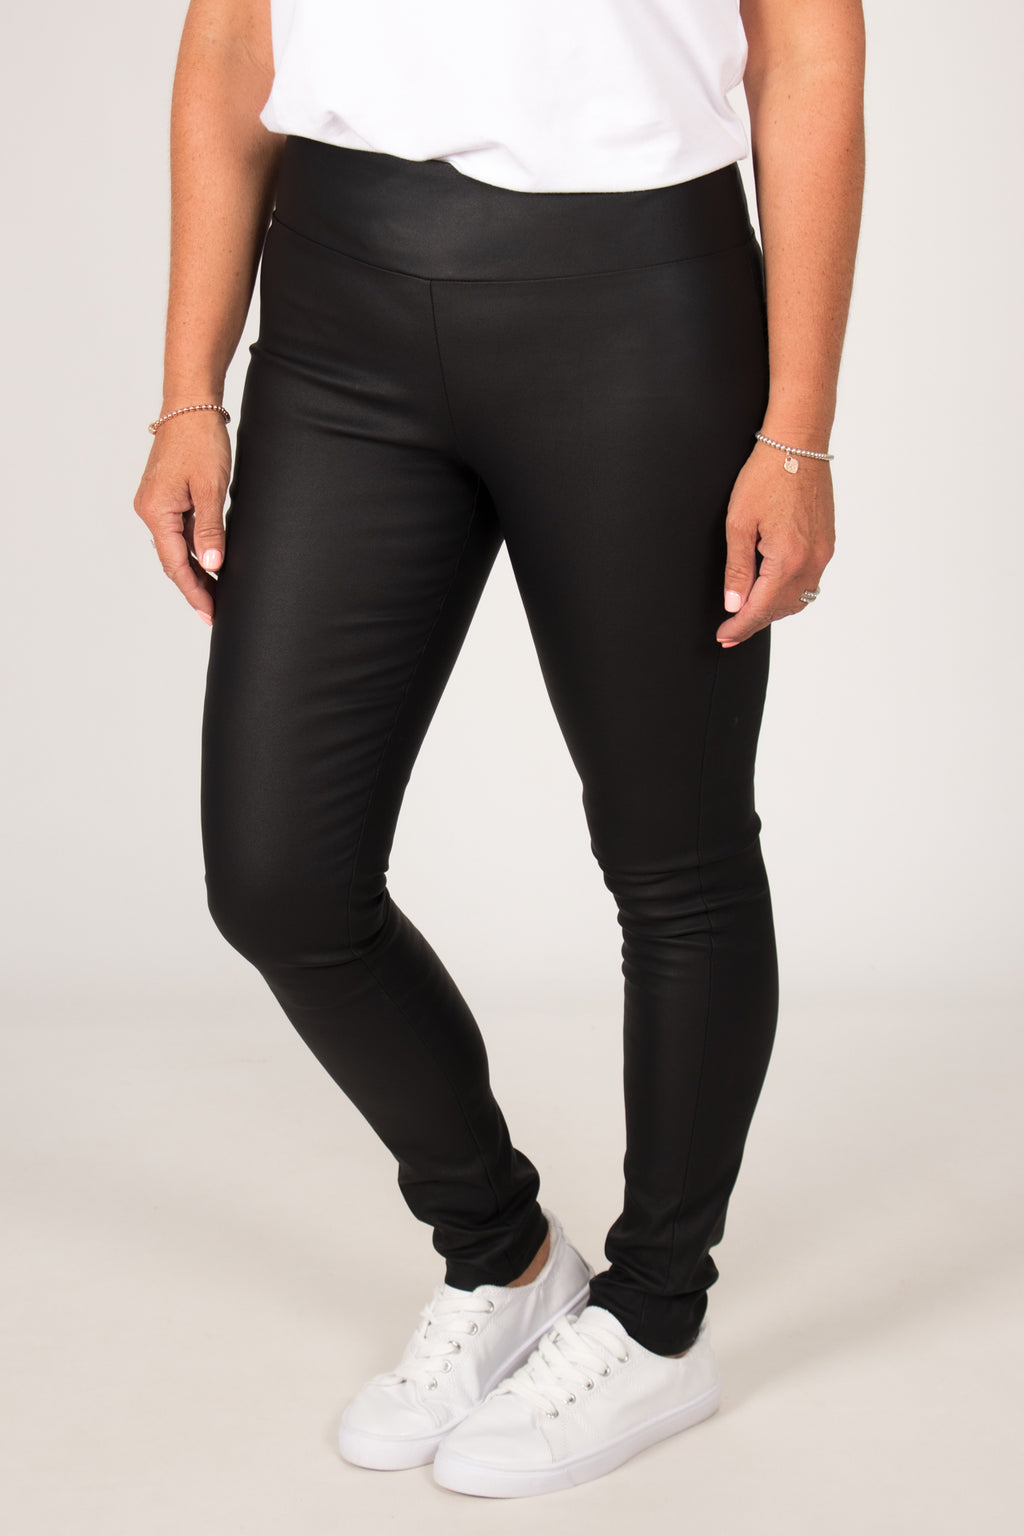 Ramada Wax Coated Pant in Black